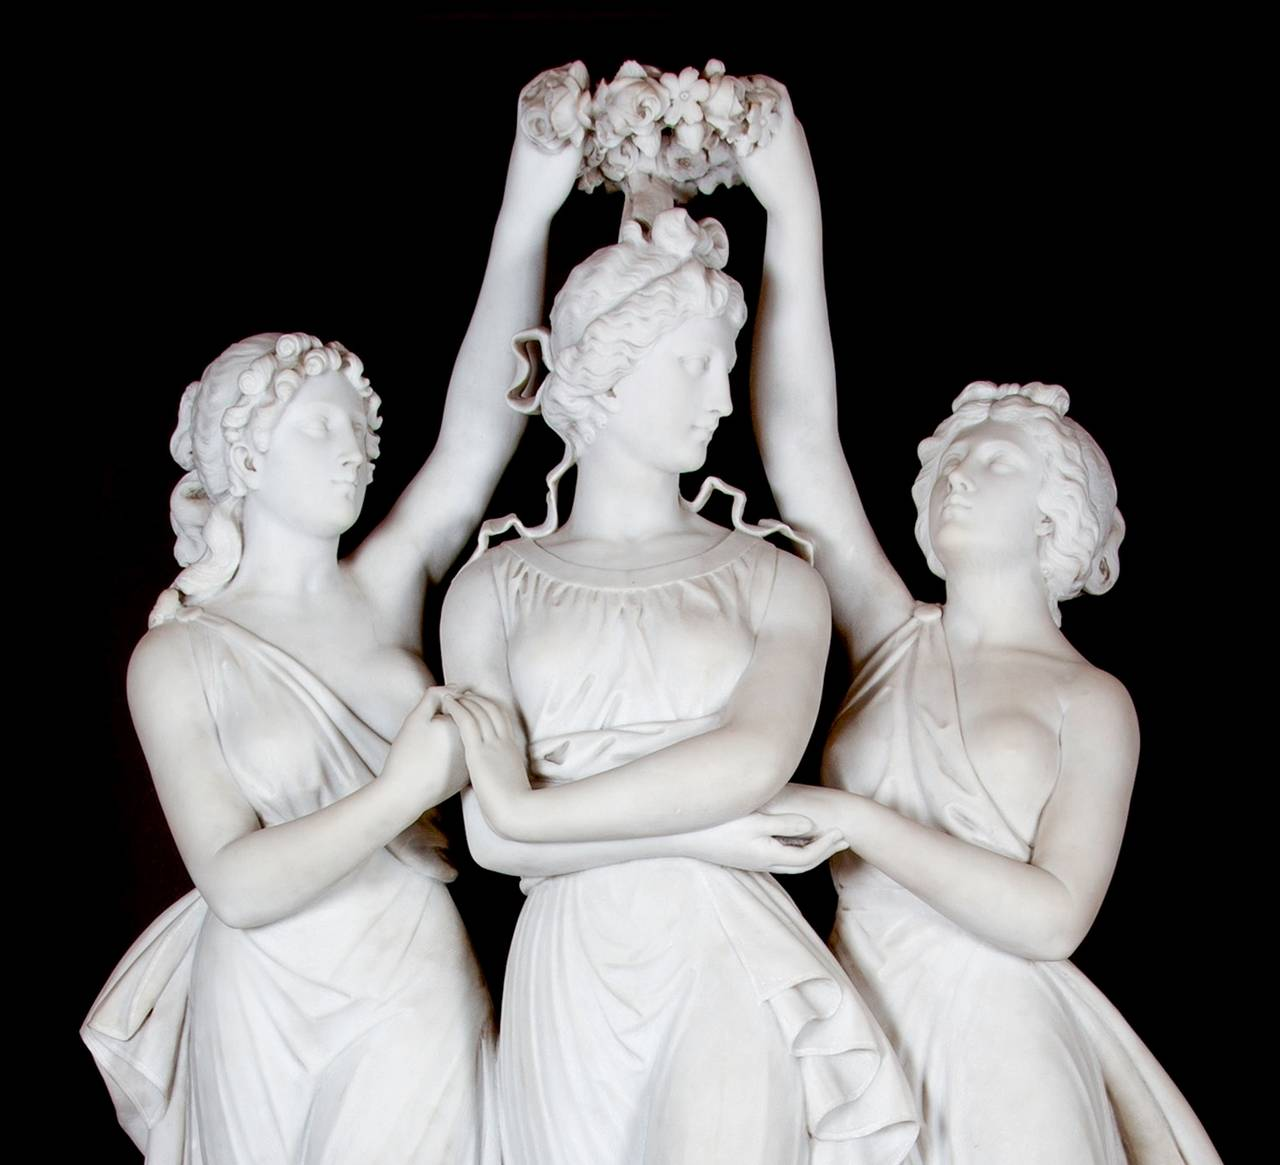 Neoclassical Marble Sculpture of the Three Graces Crowning Venus by Antonio Frilli